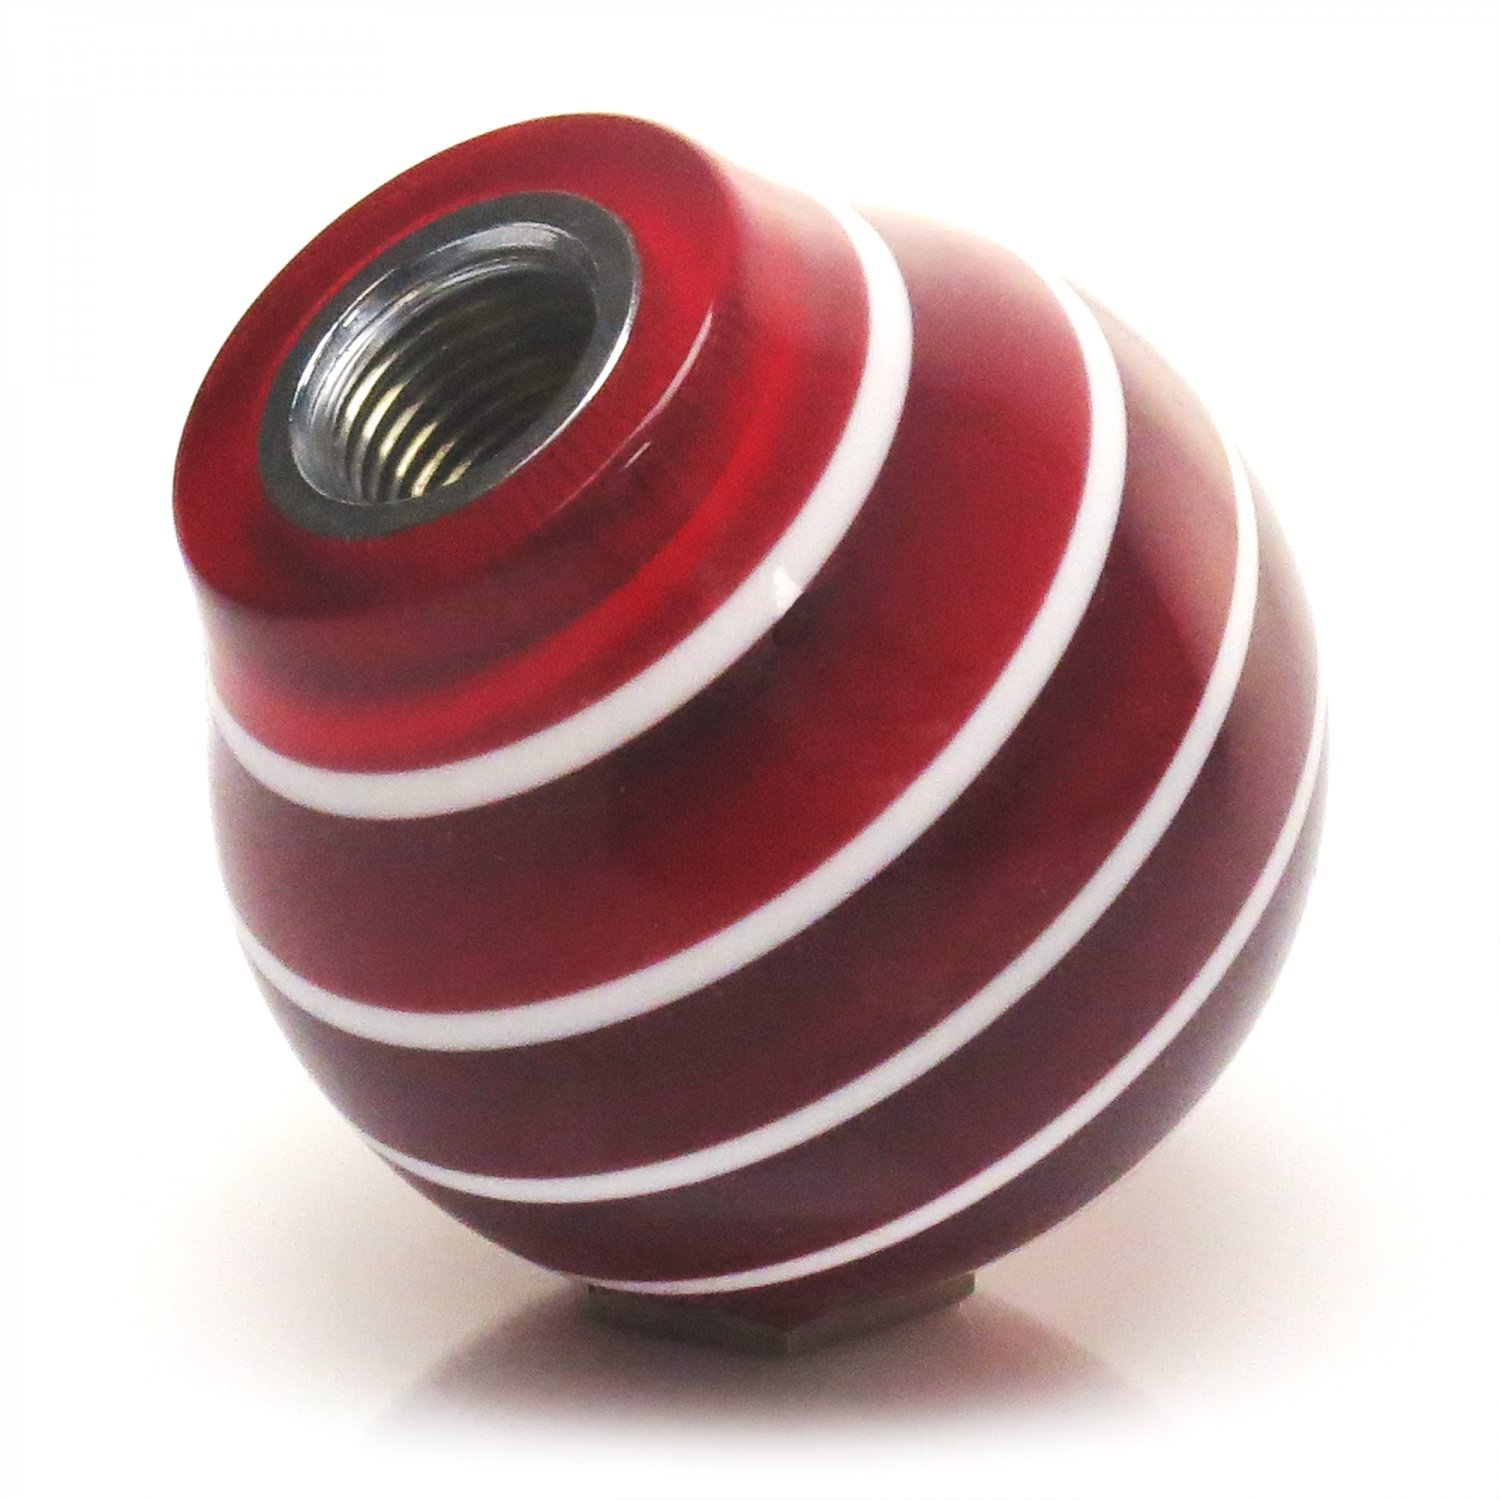 ASCSNX1594679 White Fly Red Stripe with M16 x 1.5 Insert American Shifter 273648 Shift Knob